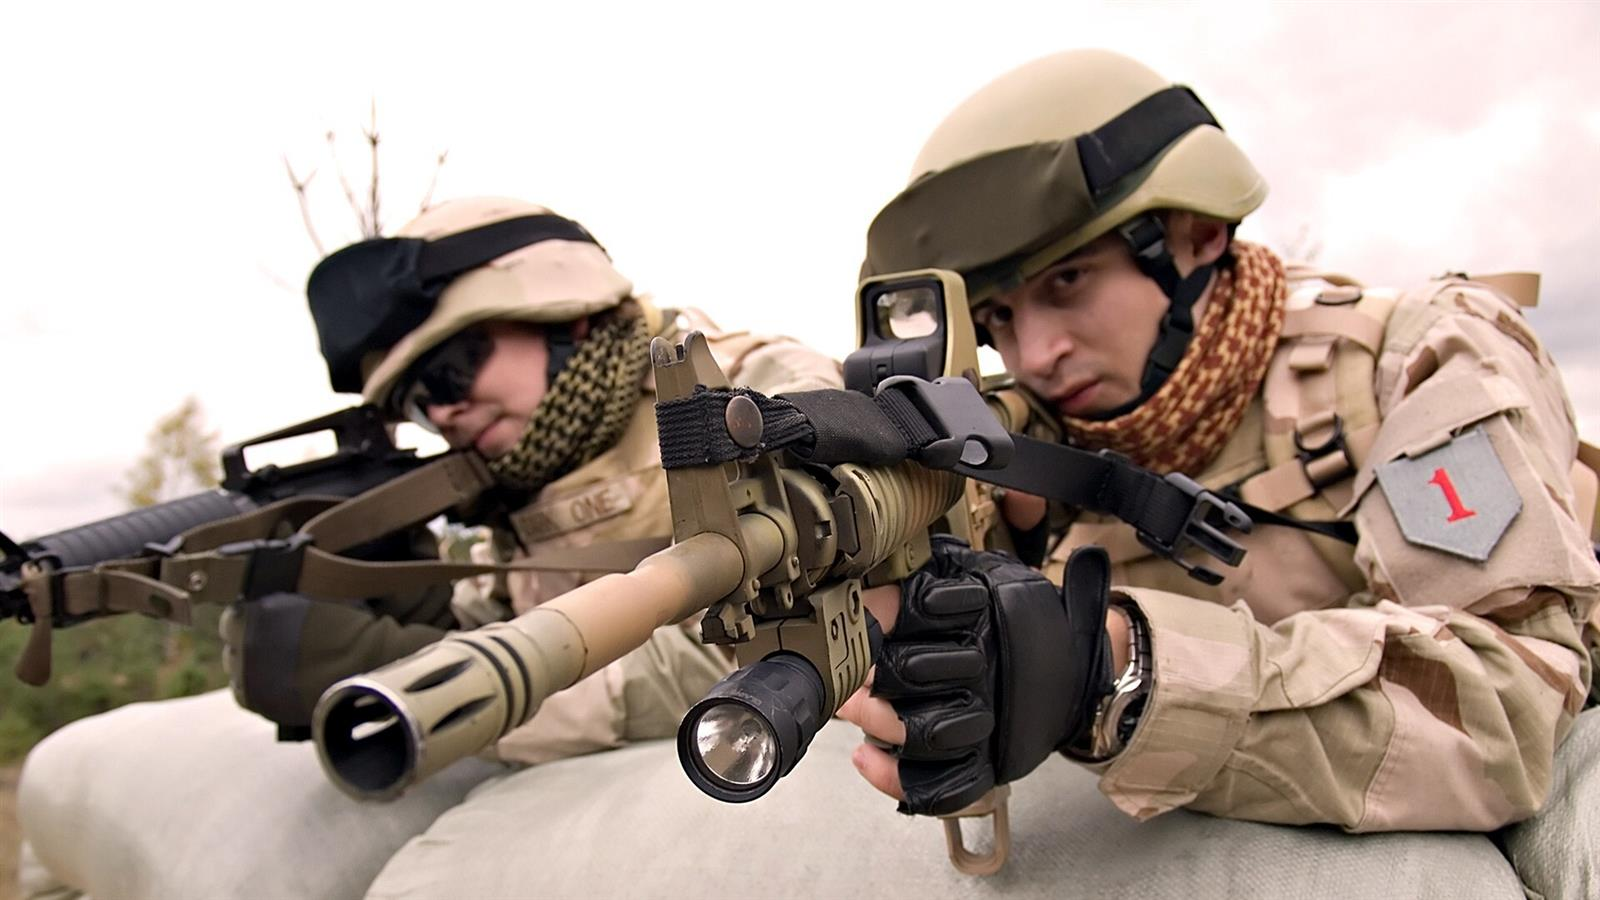 1600x900 Army Soldiers with Sniper Rifle Photo